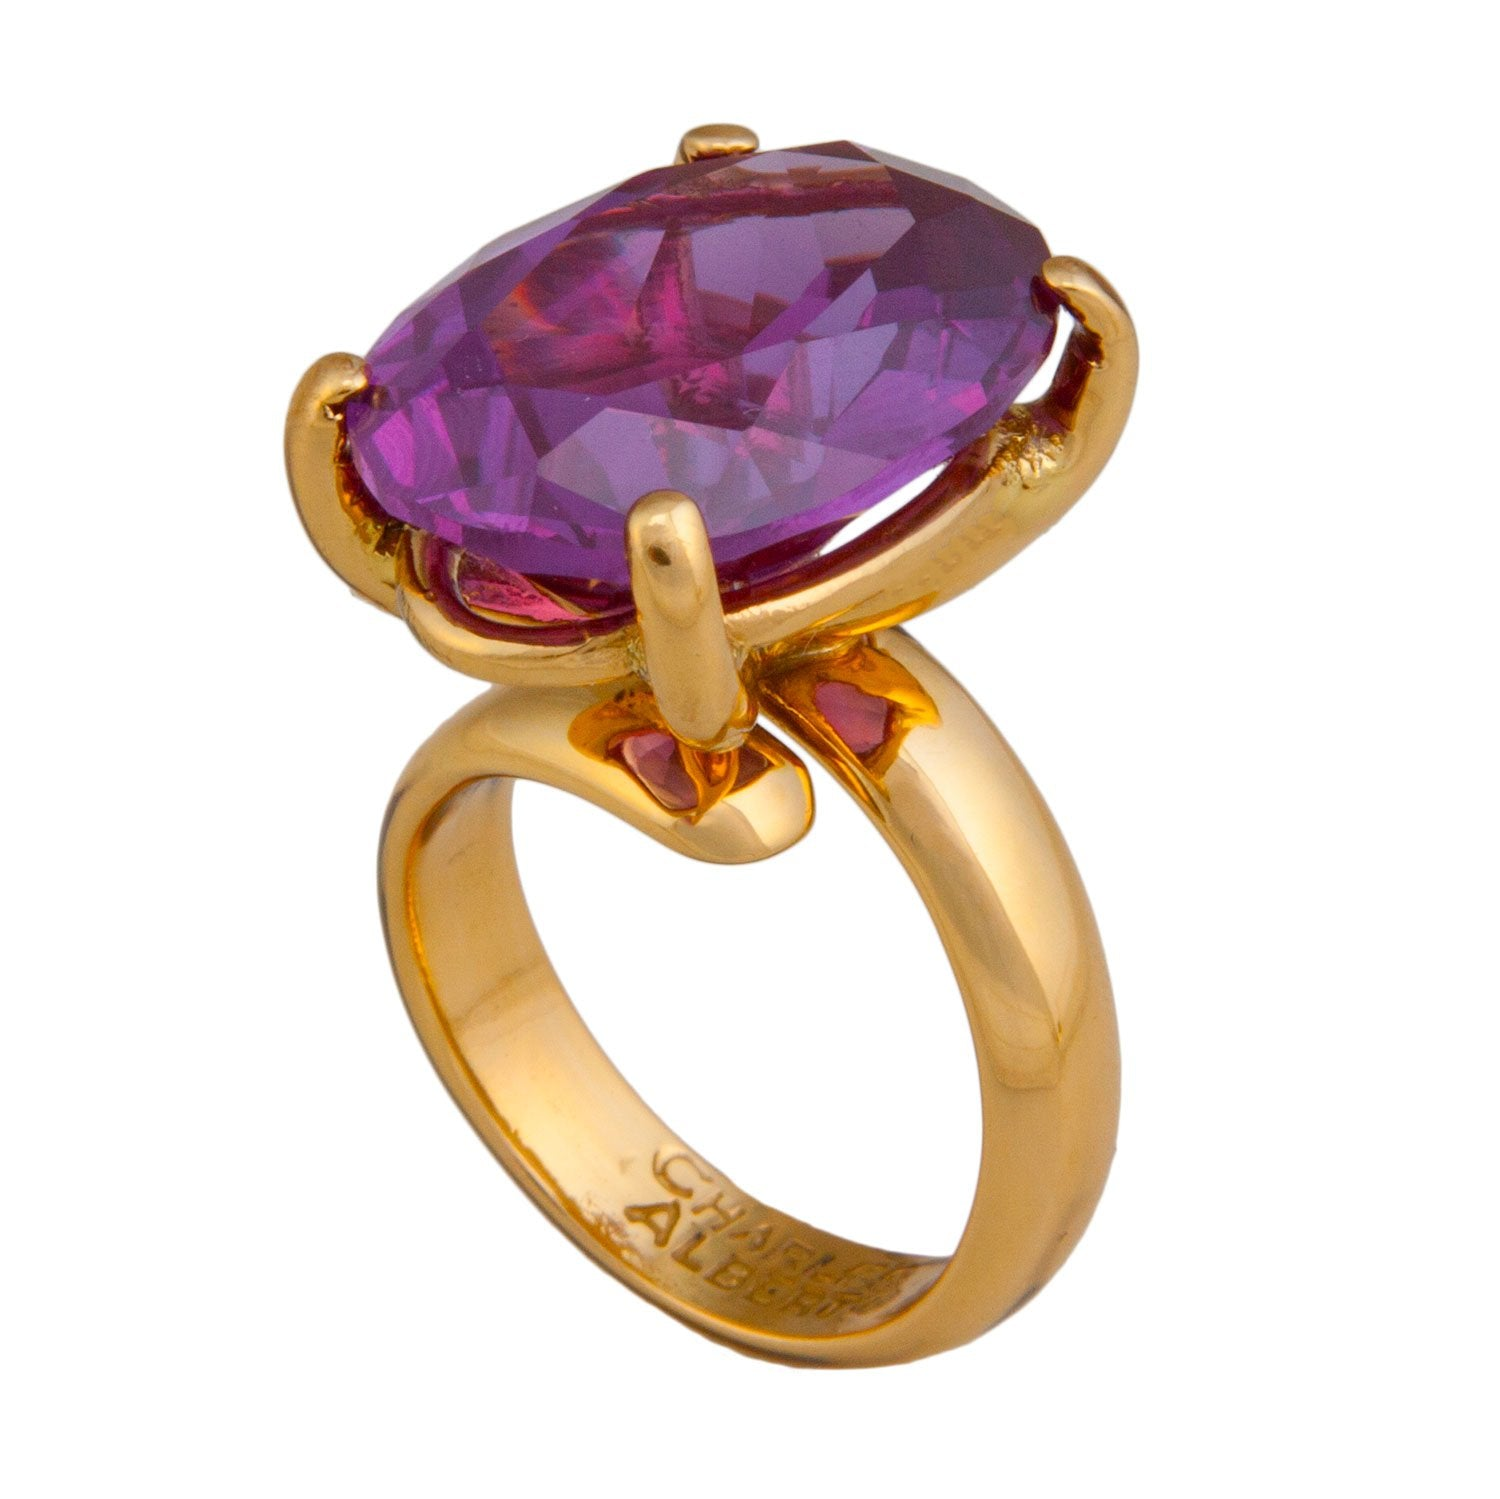 alchemia-amethyst-prong-set-adjustable-ring - 1 - Charles Albert Inc